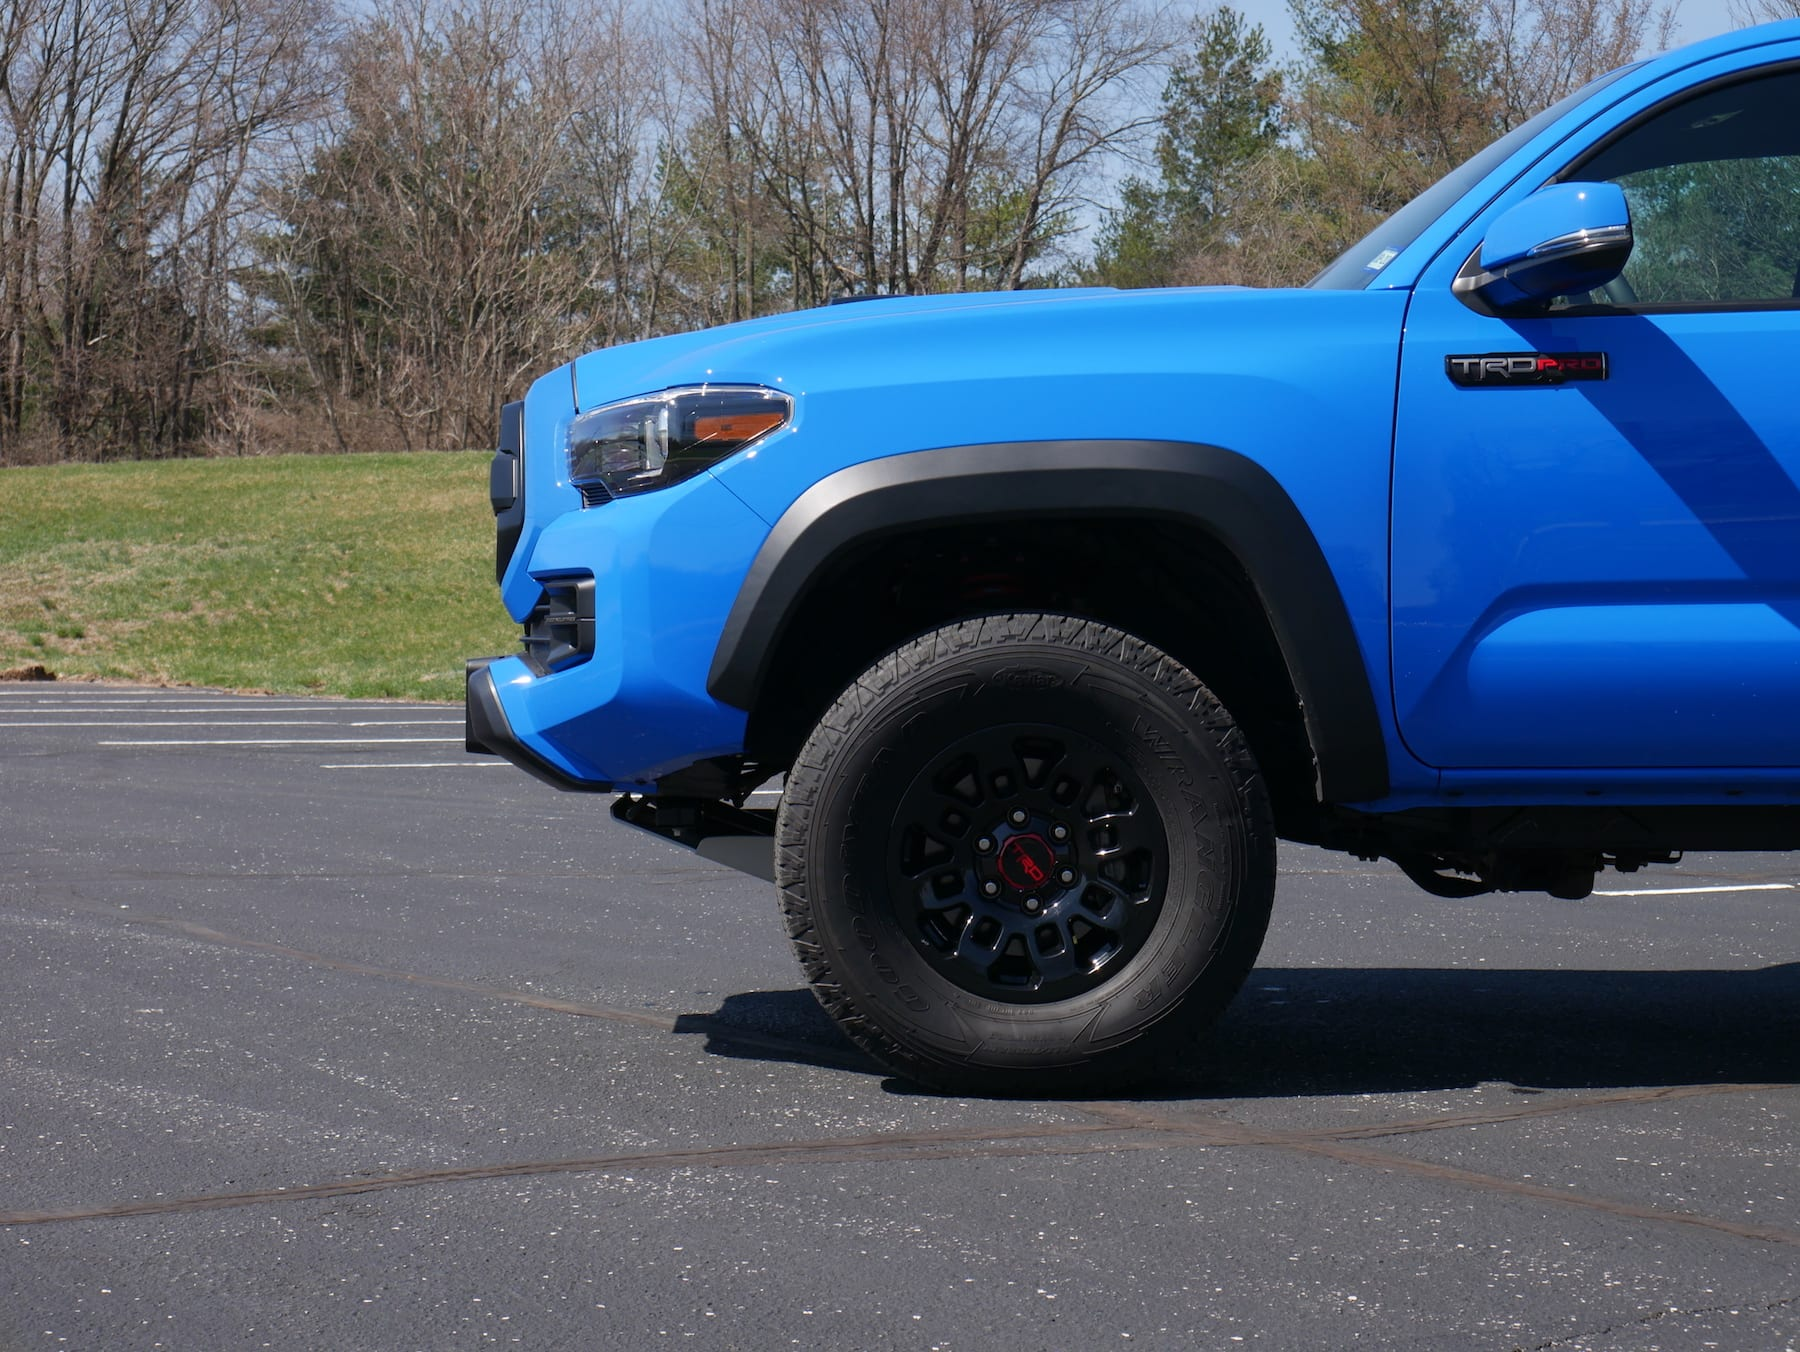 2019 Toyota Tacoma TRD Pro front fender